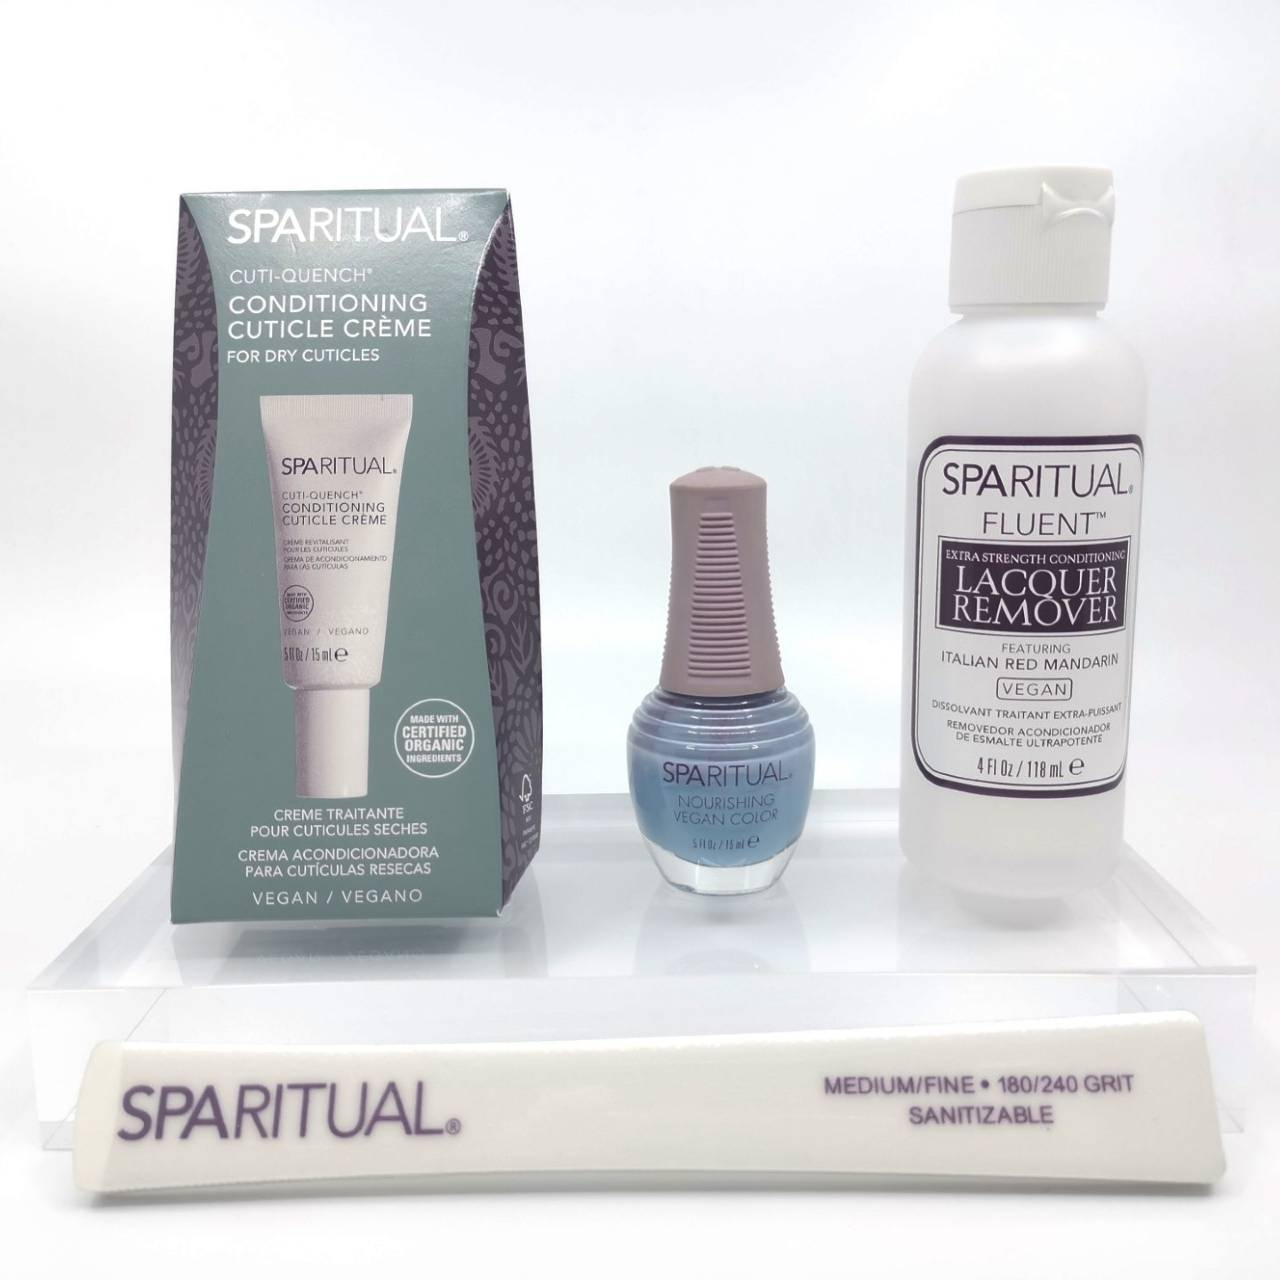 SPARITUAL At Home Nourishing Manicure Set